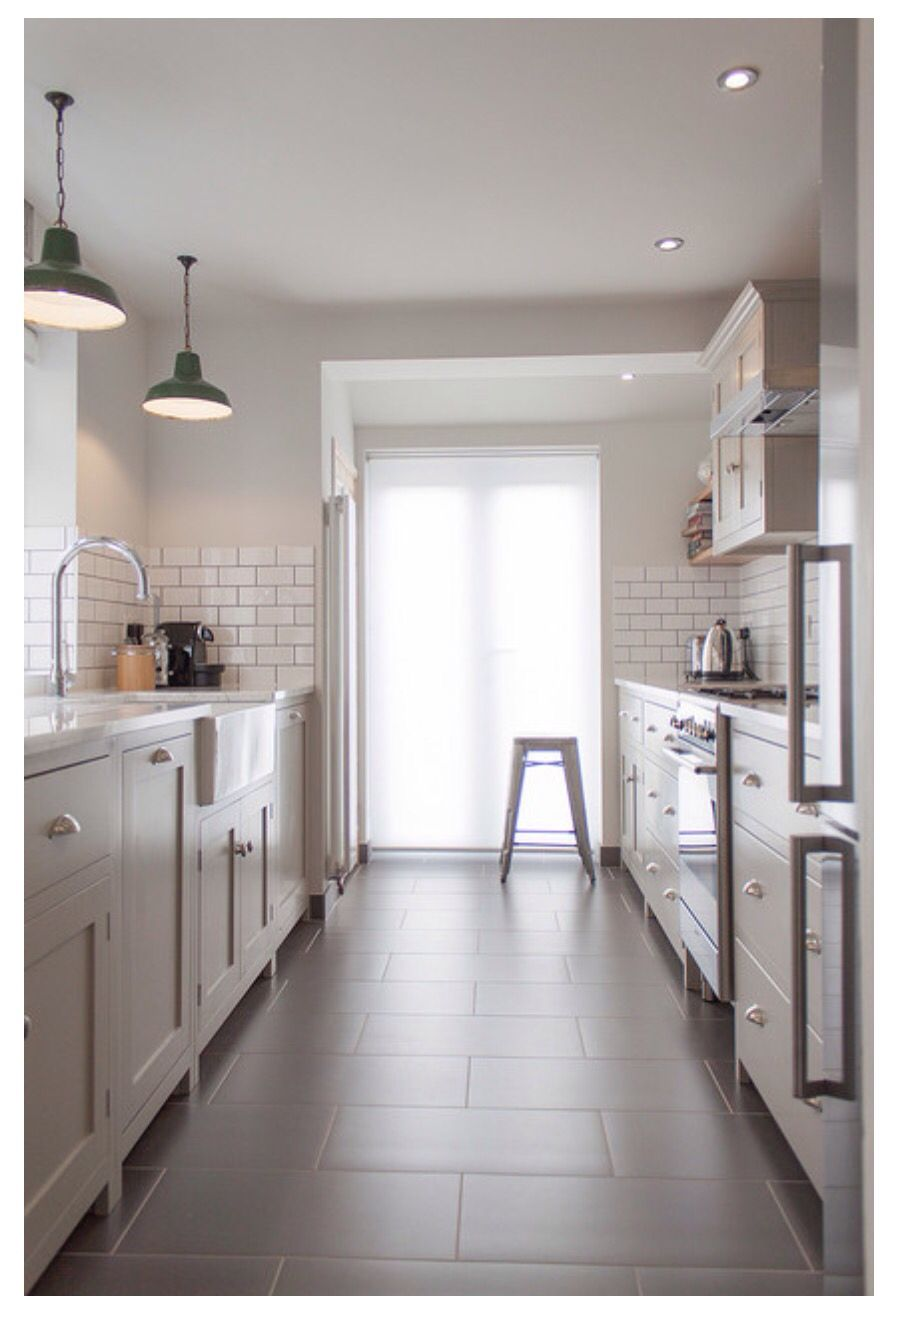 white and gray kitchen subway tiles shaker cabinets 12 x 24 tiles farmhouse sink kitchens. Black Bedroom Furniture Sets. Home Design Ideas